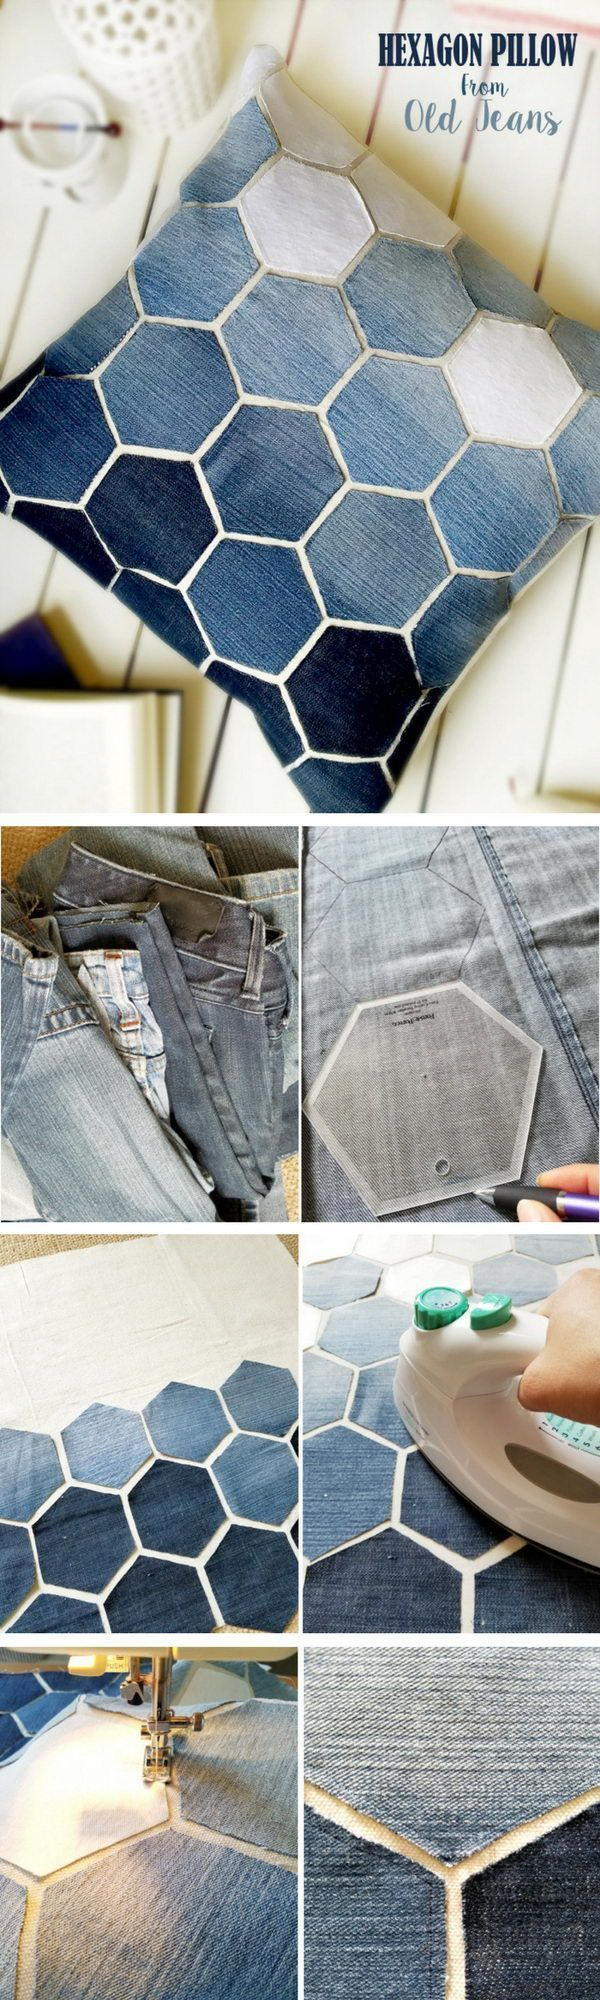 20 Creative DIY Ideas to Repurpose Your Old Jeans 2018 - #Creative #diy #Ideas #... - #vieuxjeans